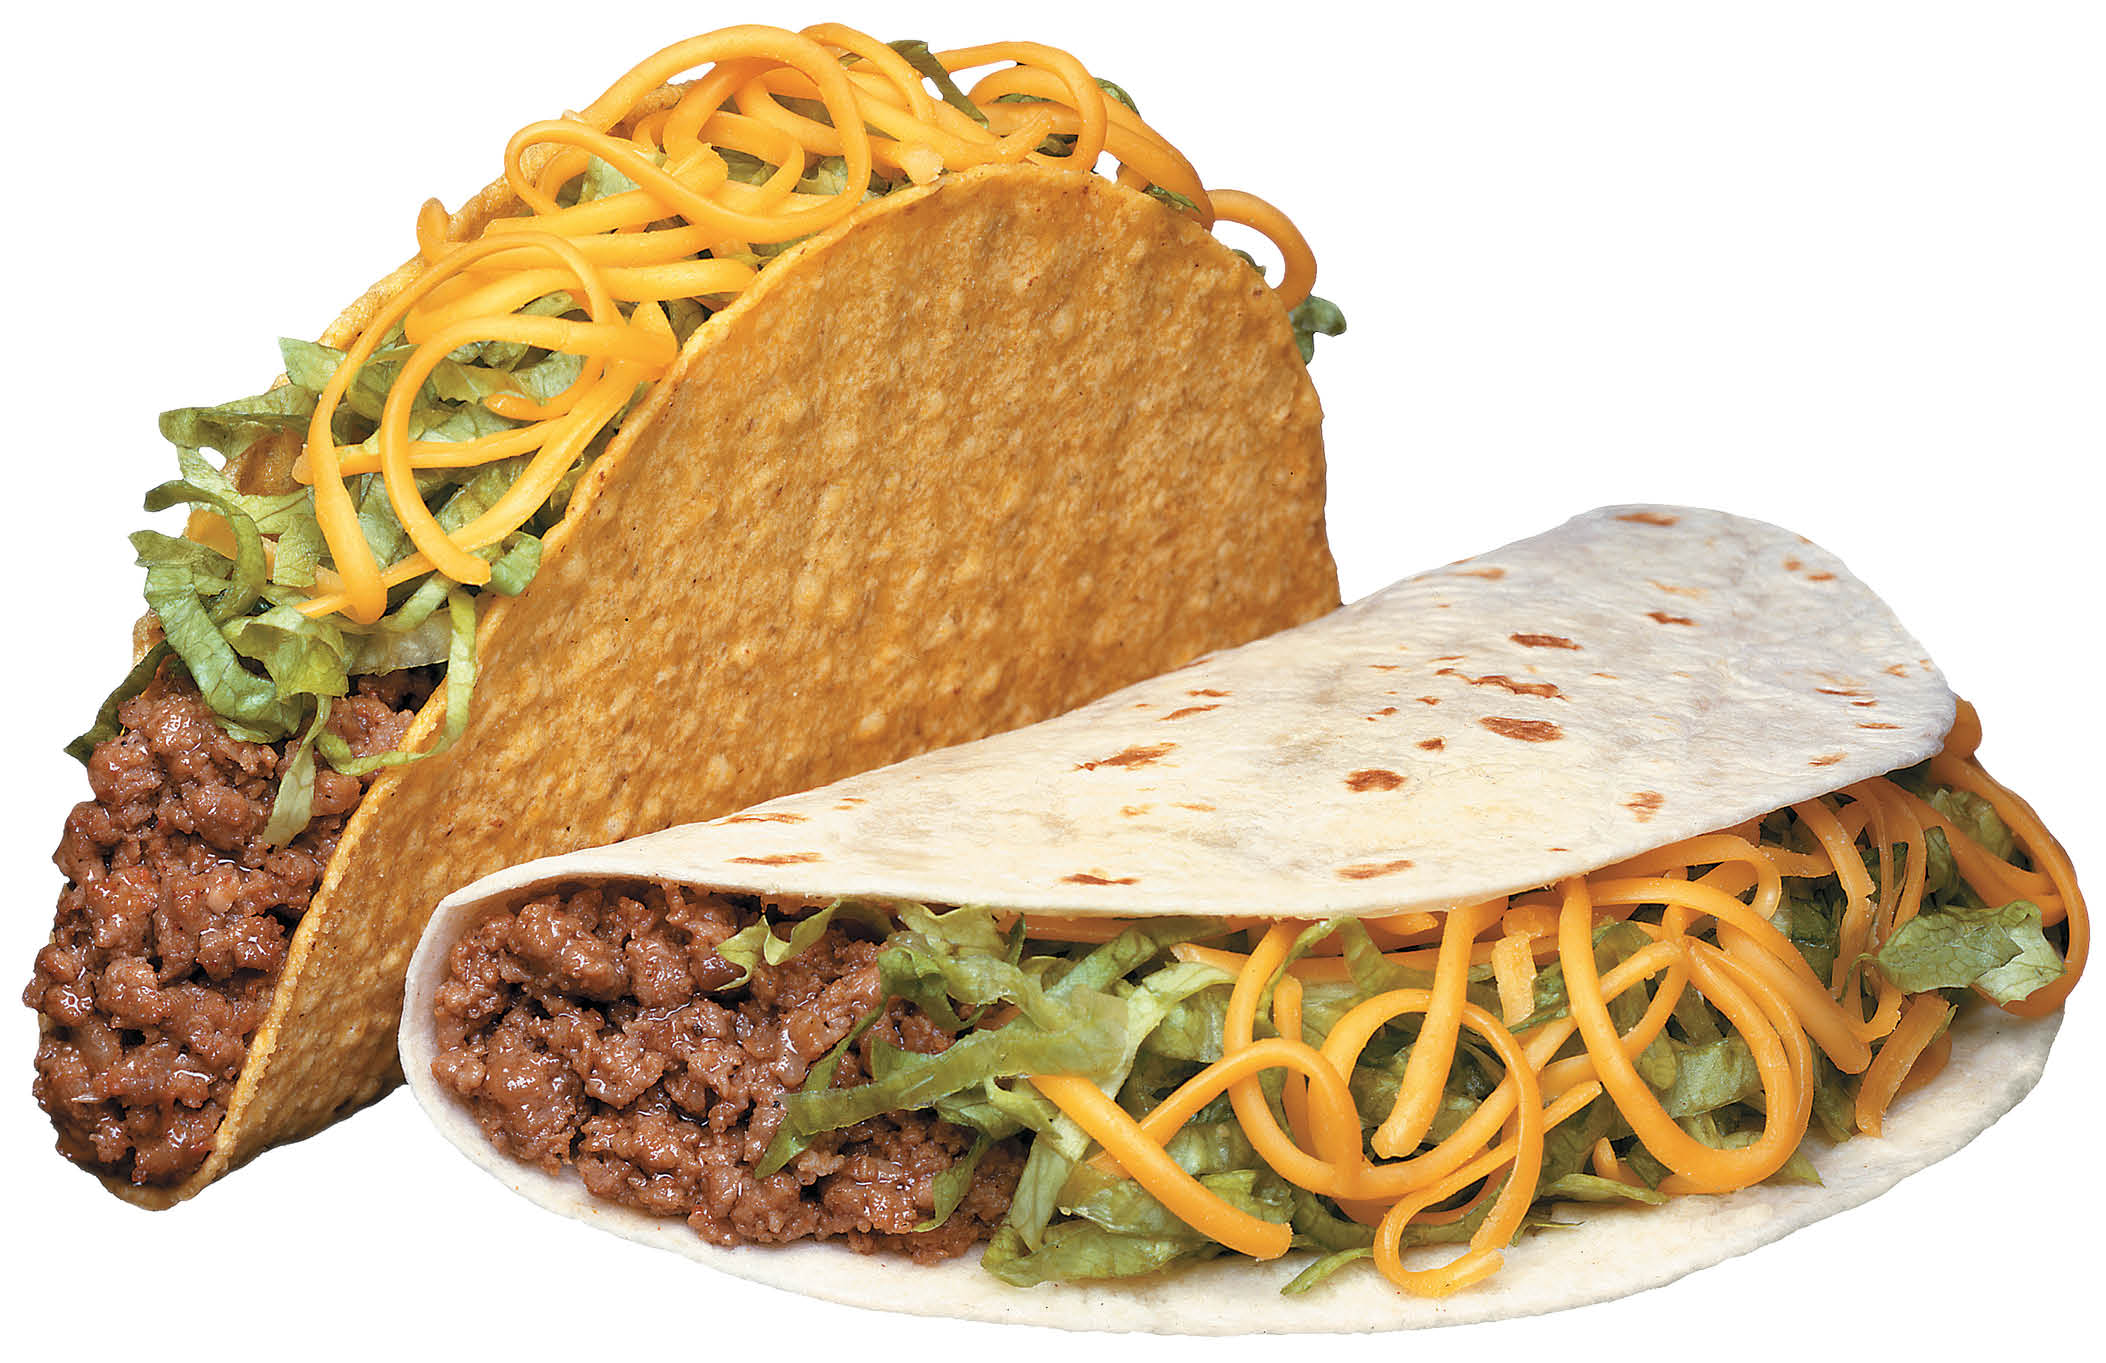 Delicious perfectly seasoned Mexican tacos for lunch or dinner